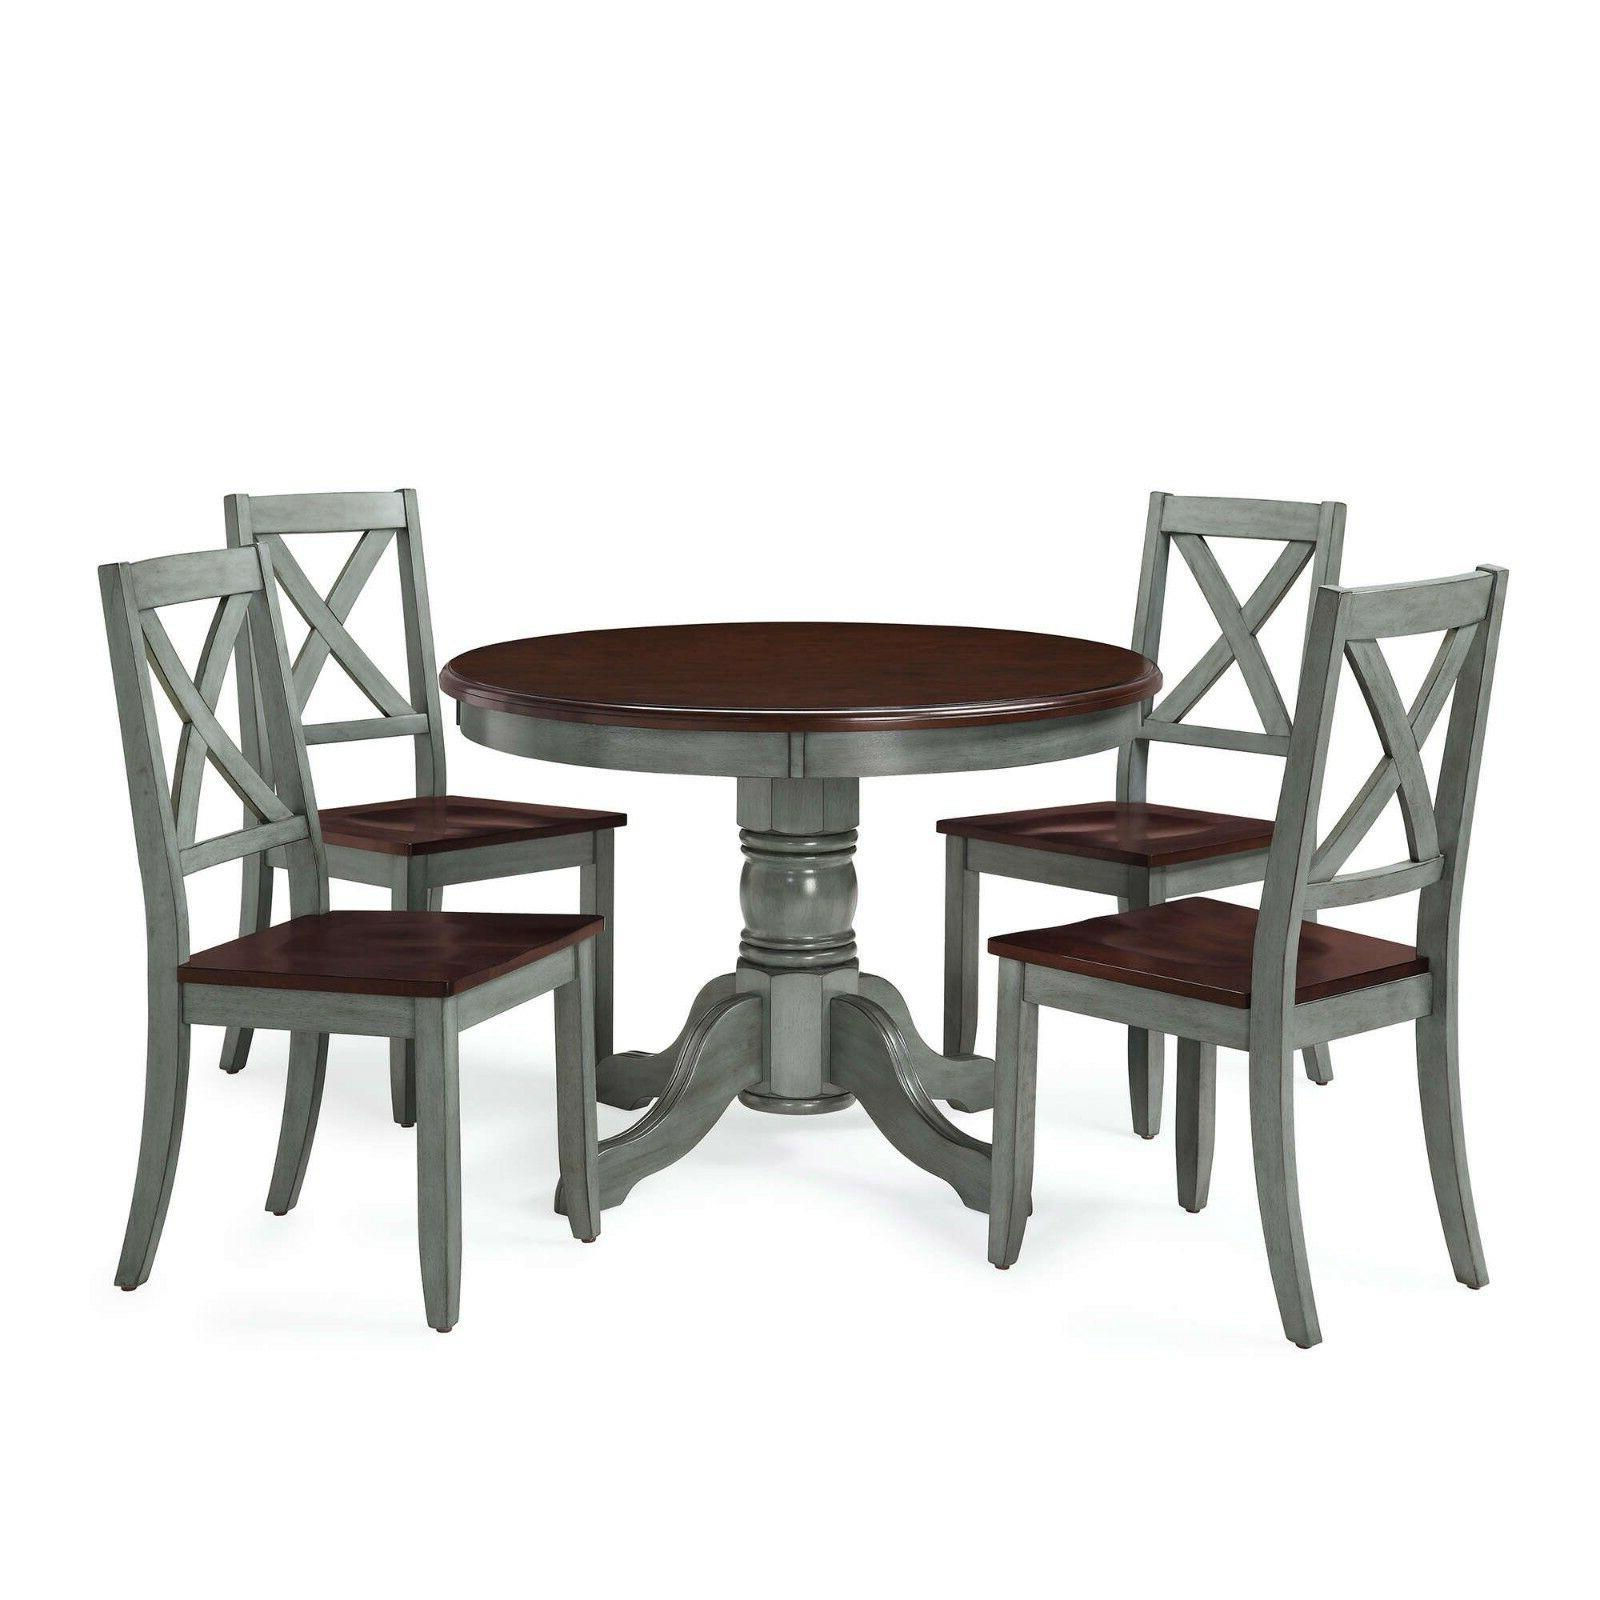 5 Set Rustic Table Chairs Mocha